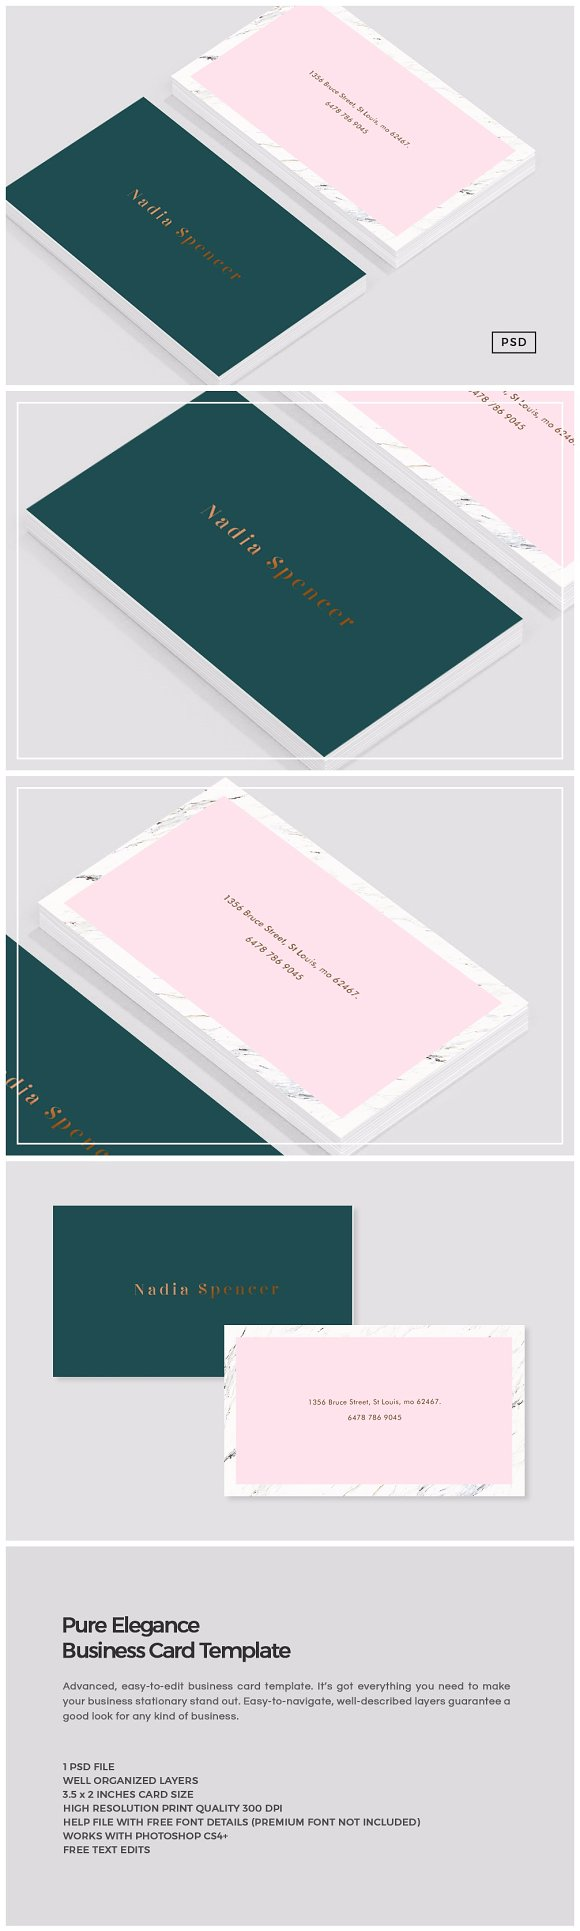 Pure Elegance Business Card Template ~ Business Card Templates ...